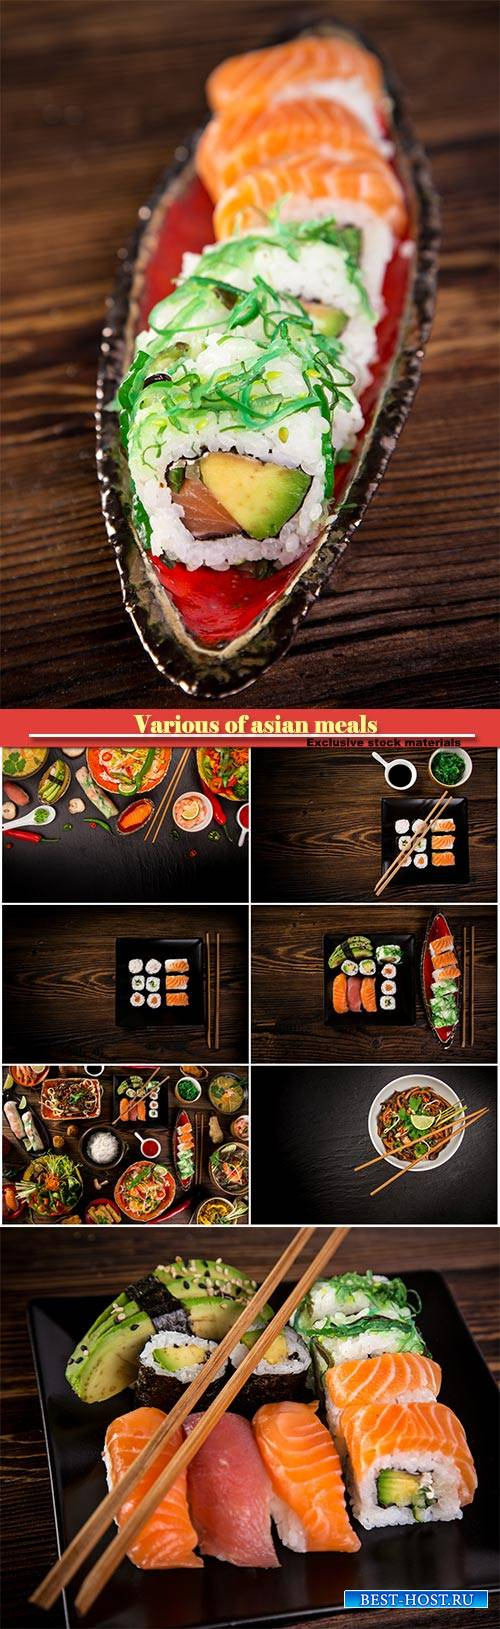 Various of asian meals on rustic background